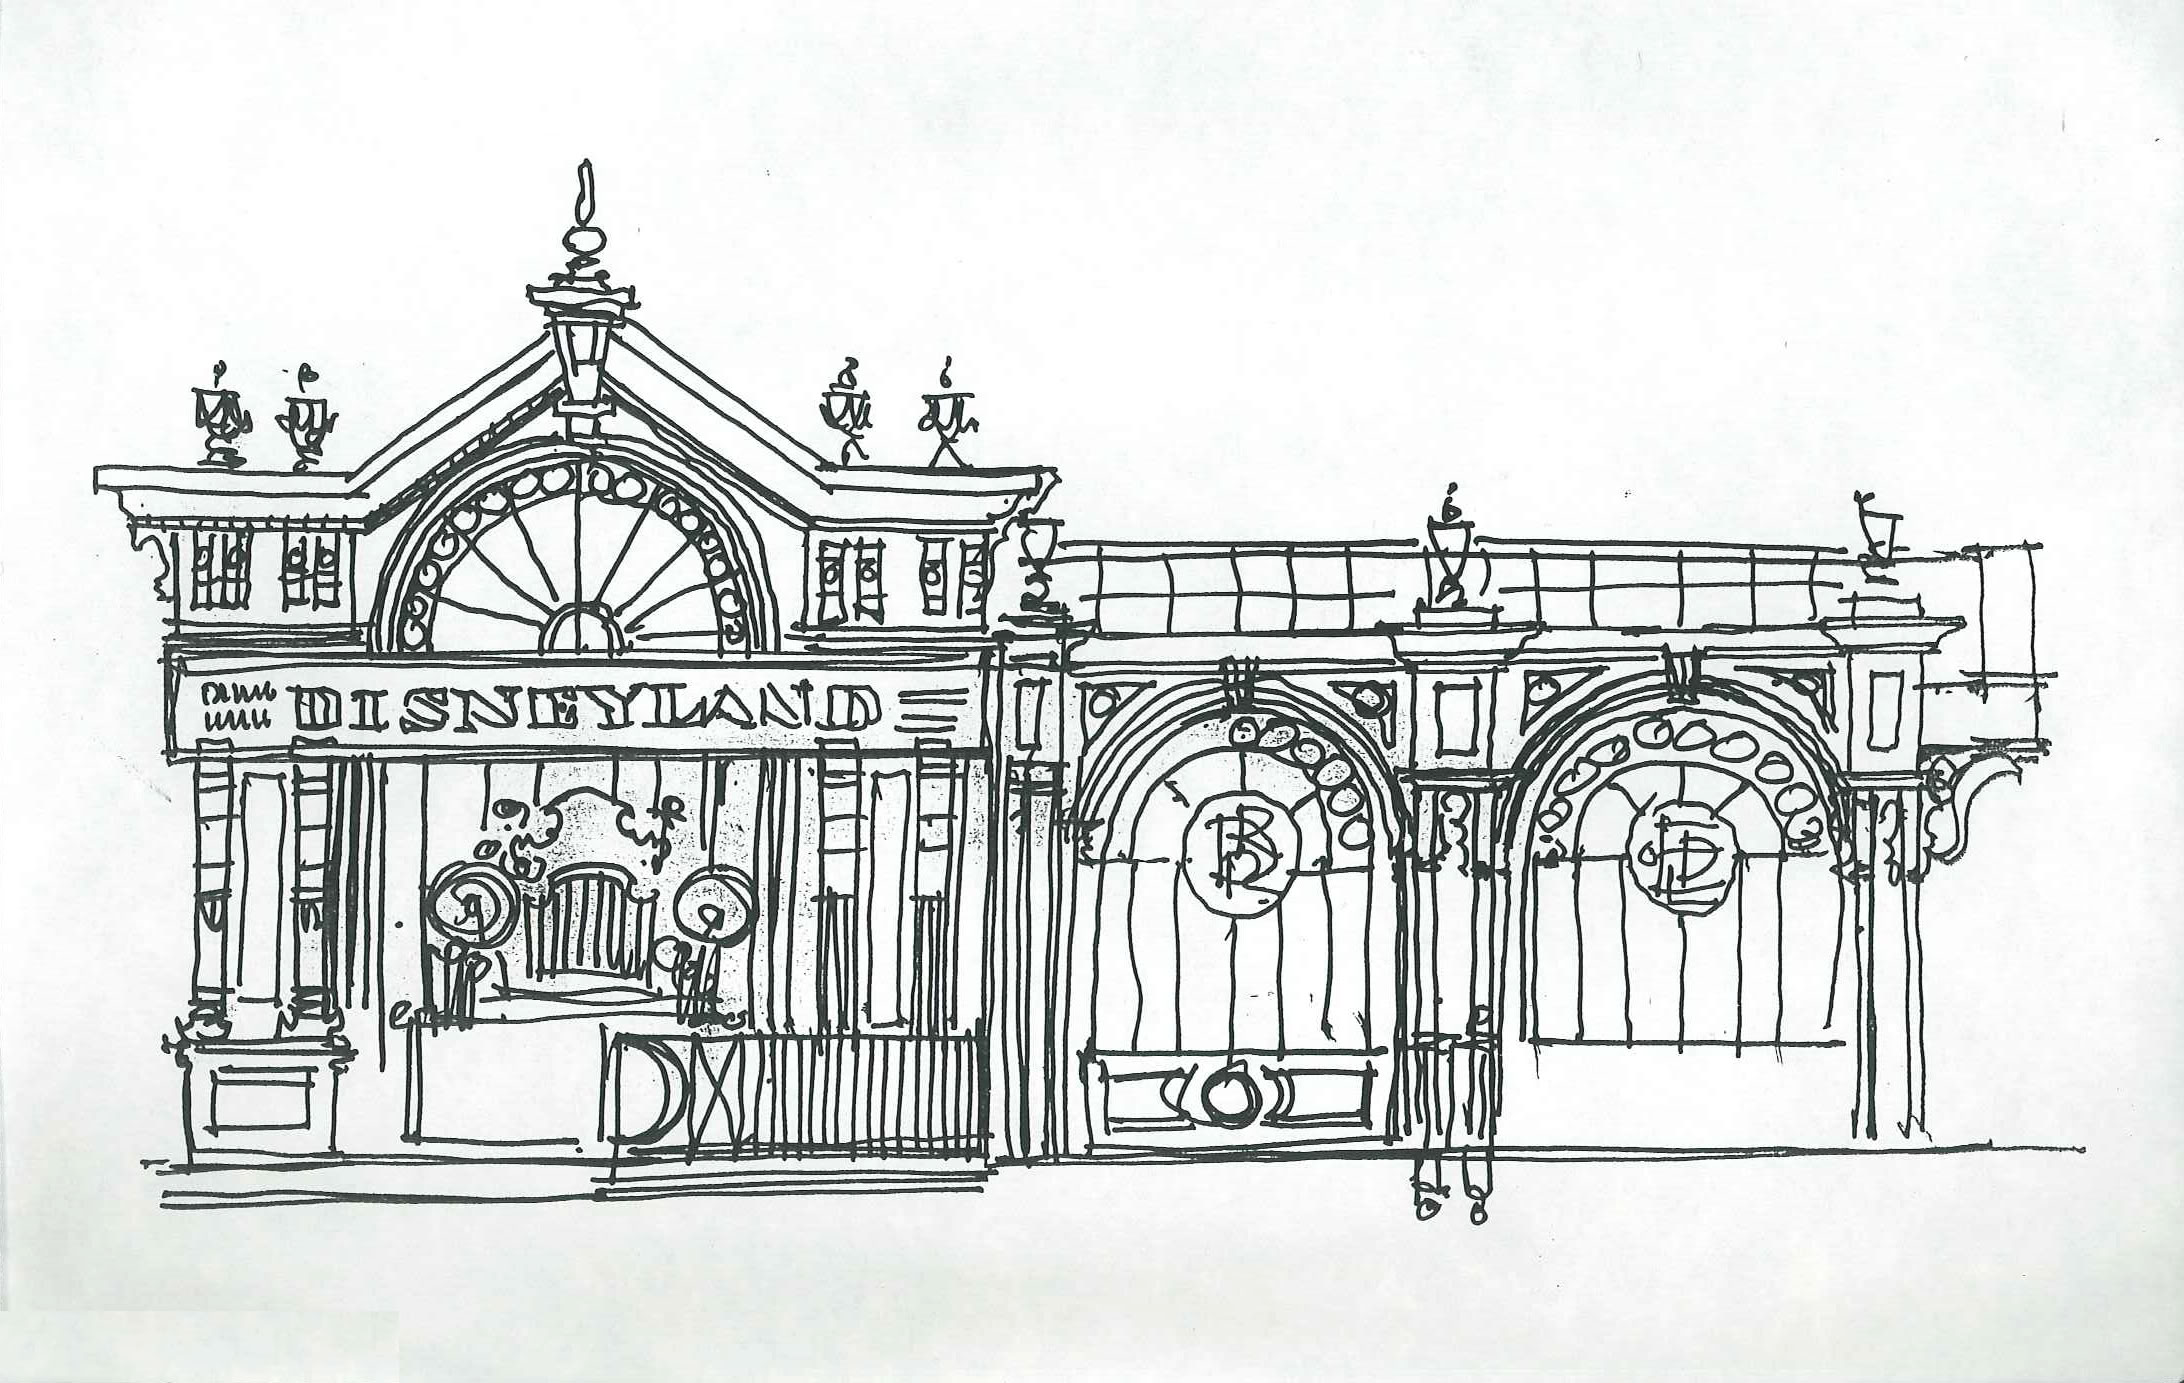 First Sotto elevation sketch of the Station marquee facing the Disneyland Hotel©Sotto